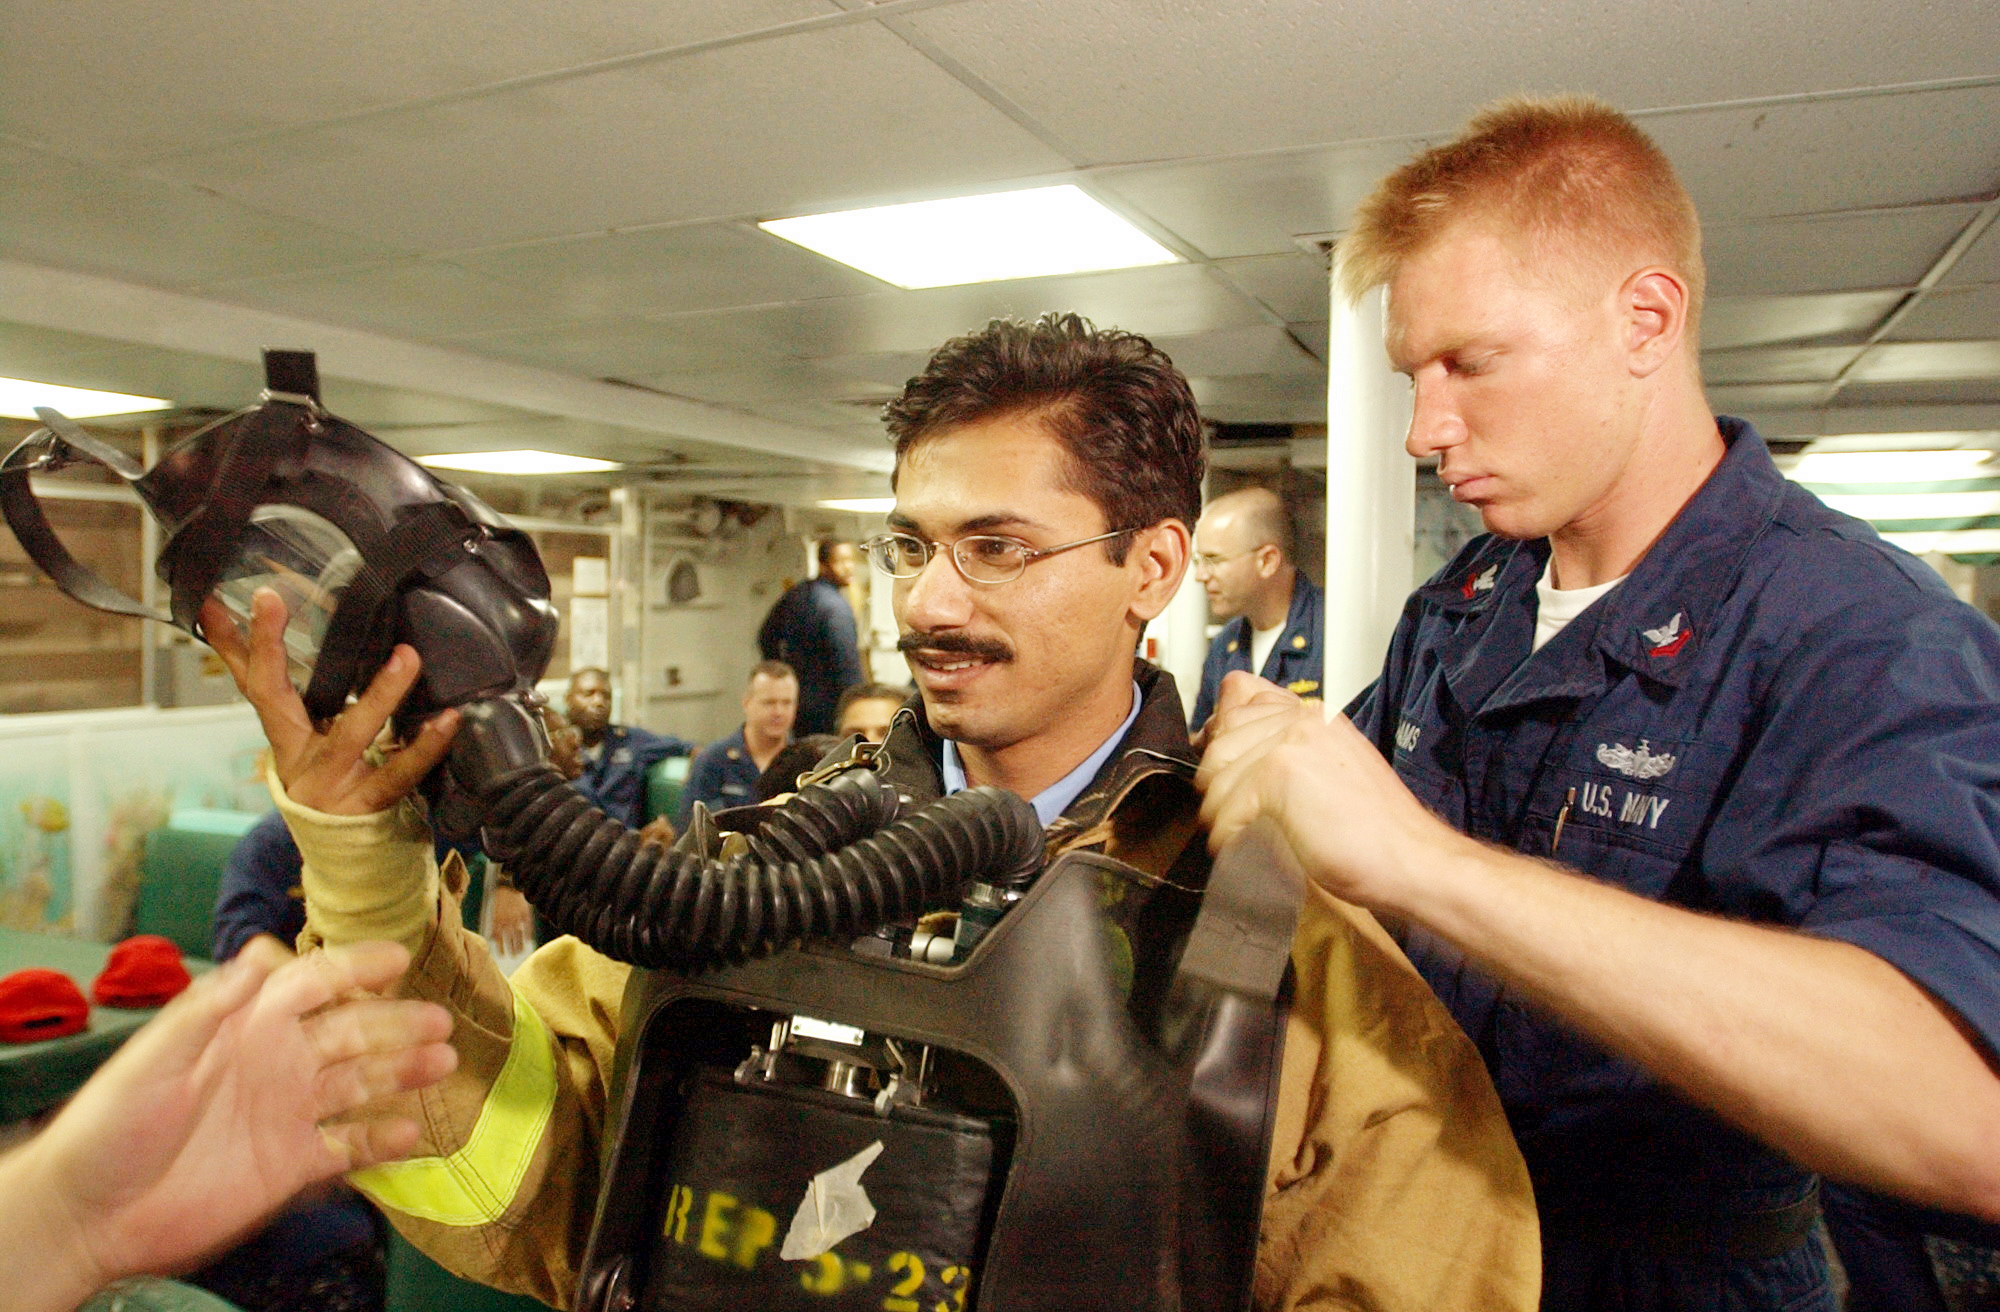 File:US Navy 020924-N-4309A-030 Damage Controlman assists with the ...